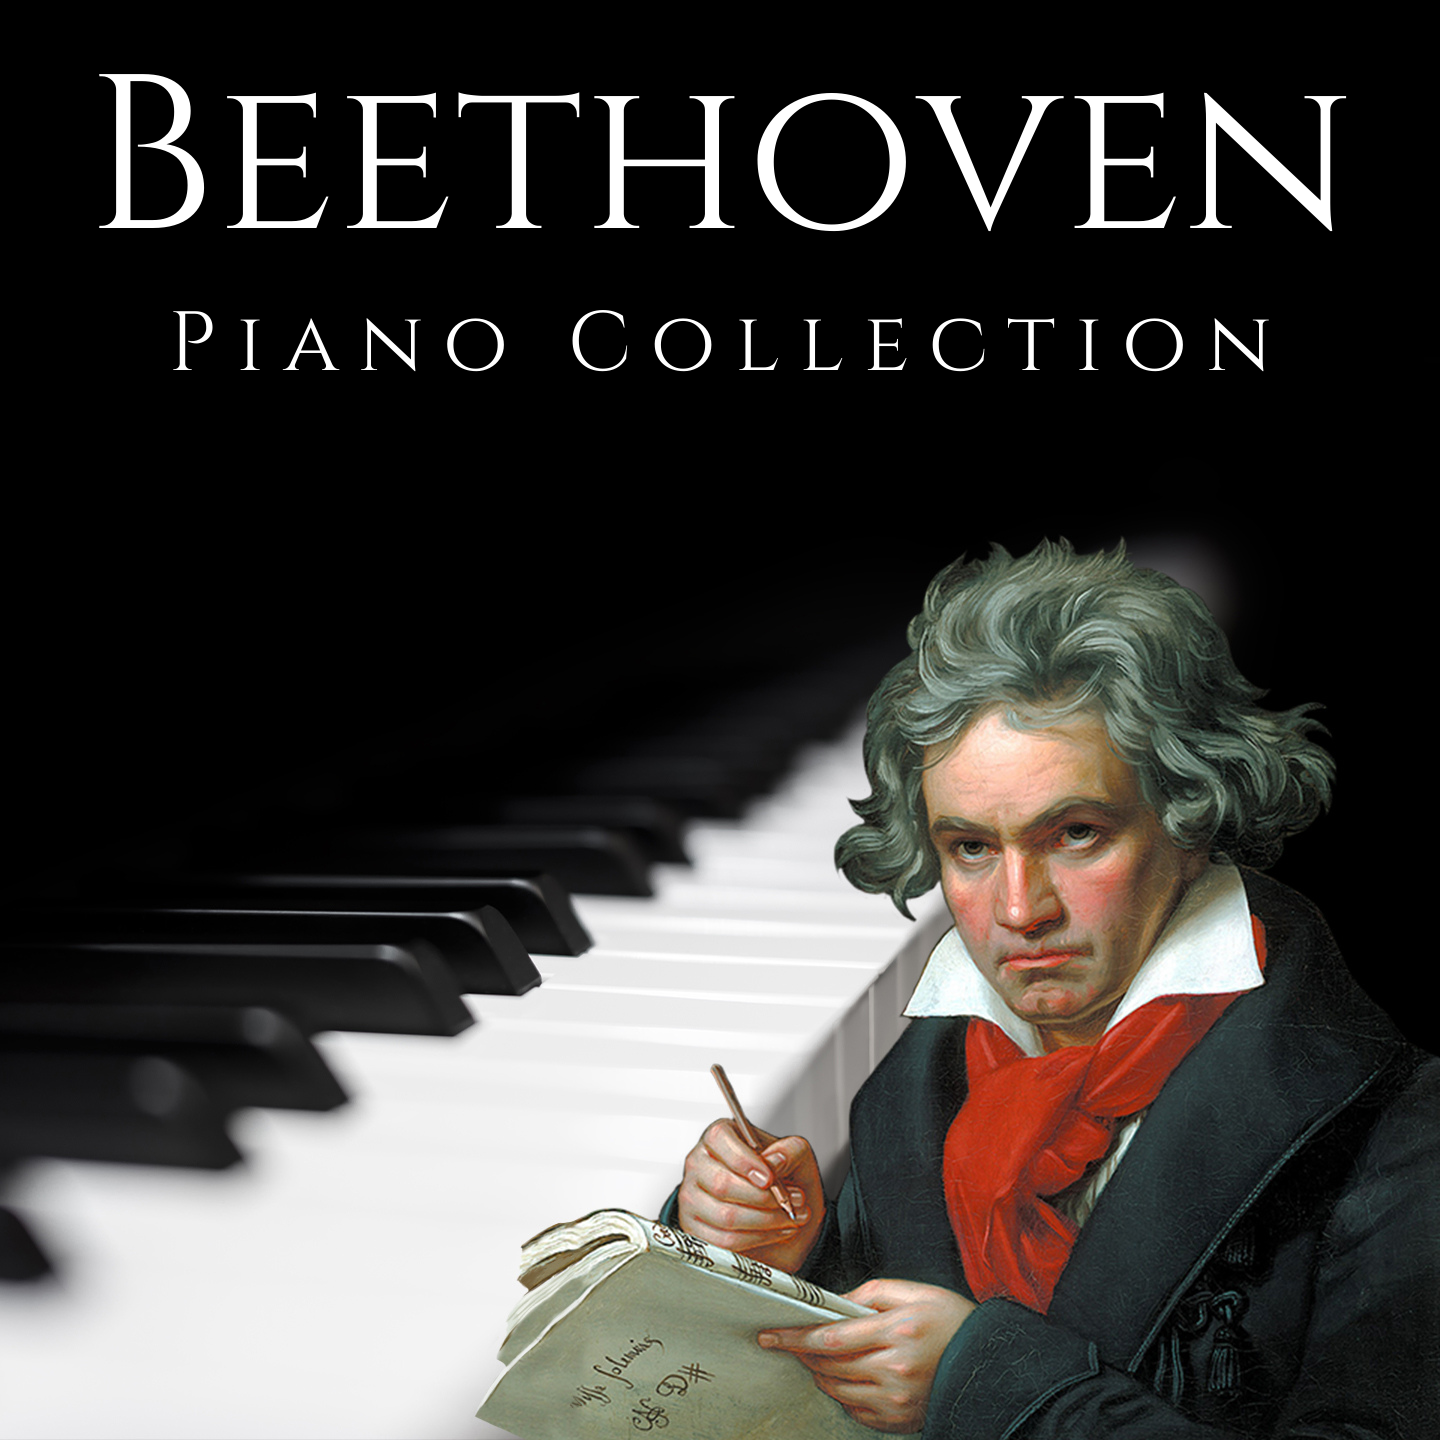 Beethoven Piano Collection